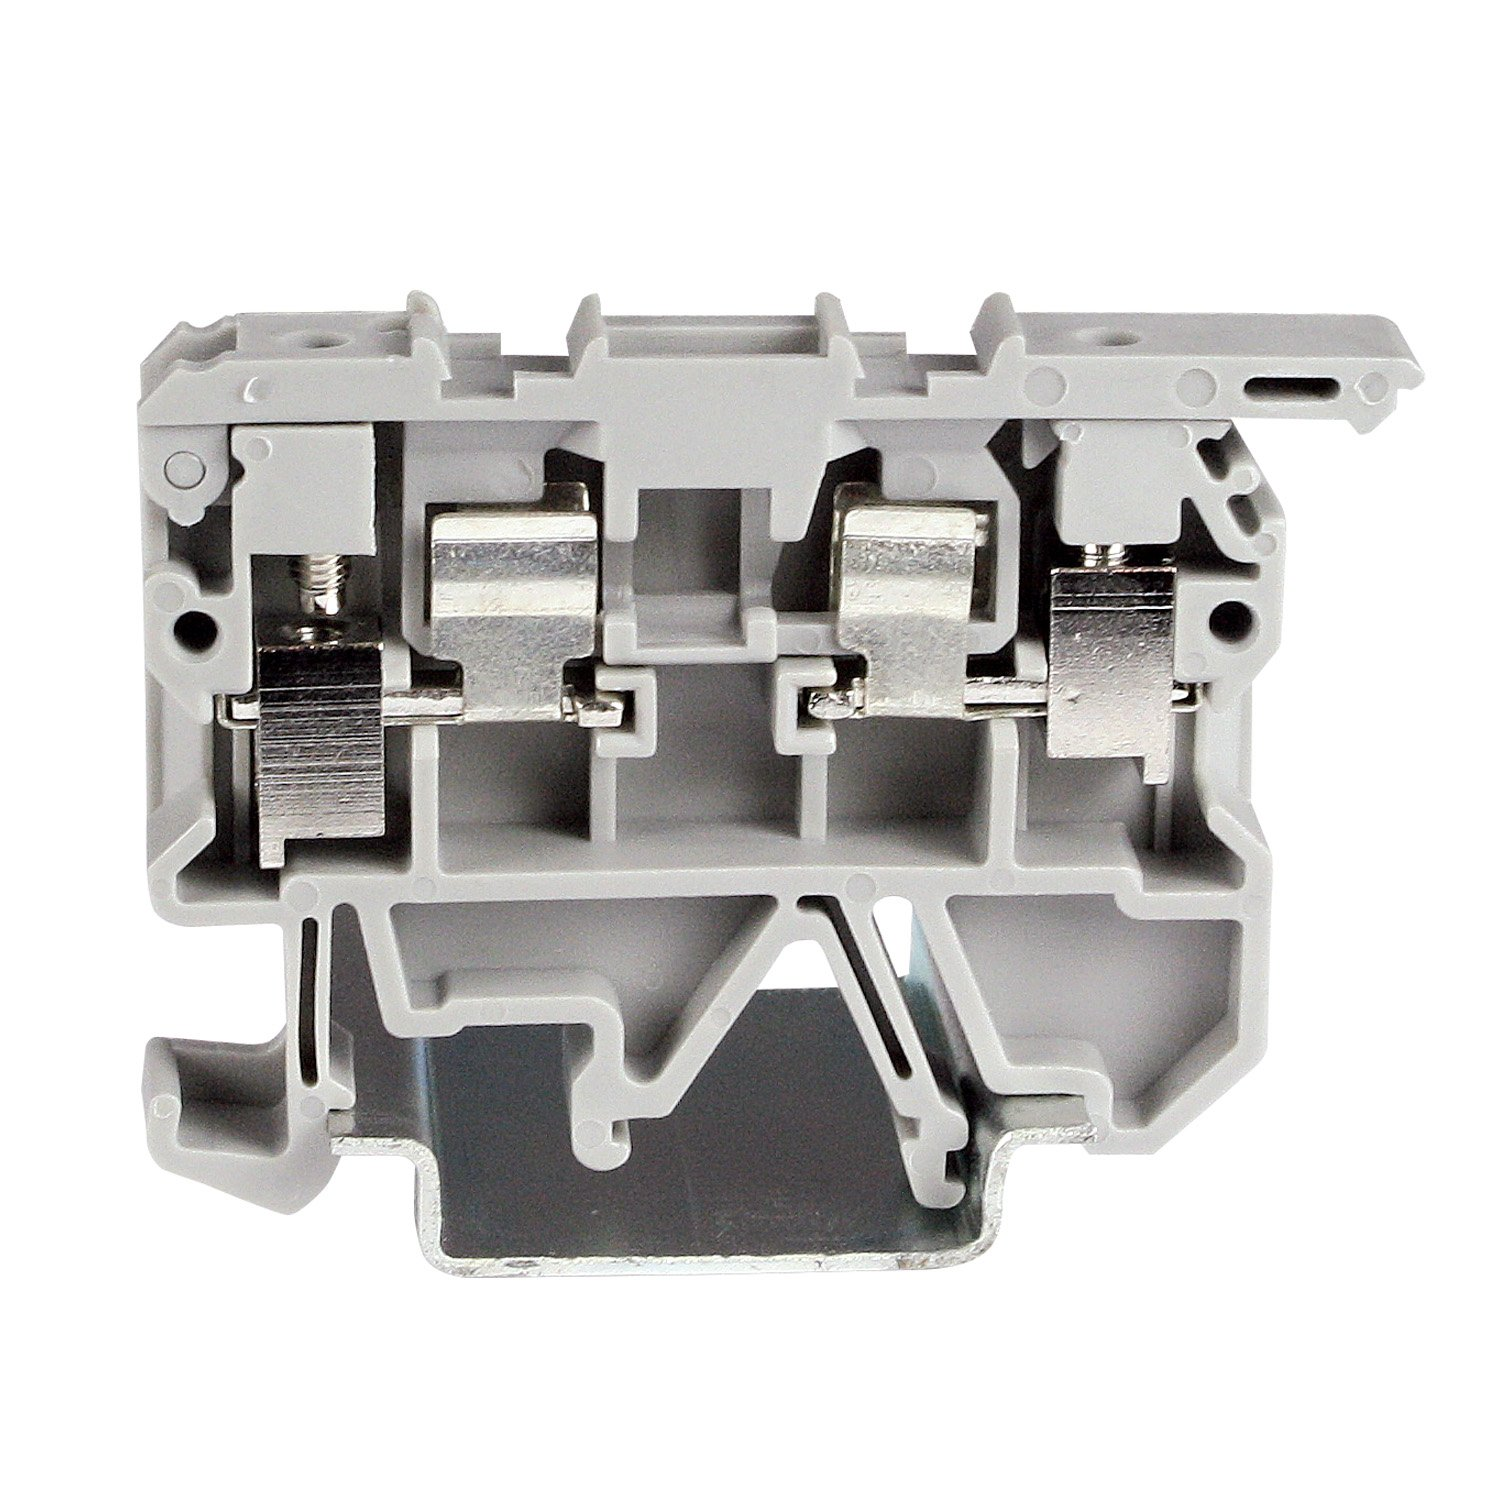 ASI ASIASK1 DIN Rail Fuse Disconnect Terminal Block, Screw Clamp, 5 mm x 20 mm, 8 mm Wide, UL Rated 10 Amp at 300V, 22 AWG to 12 AWG (Pack of 50)